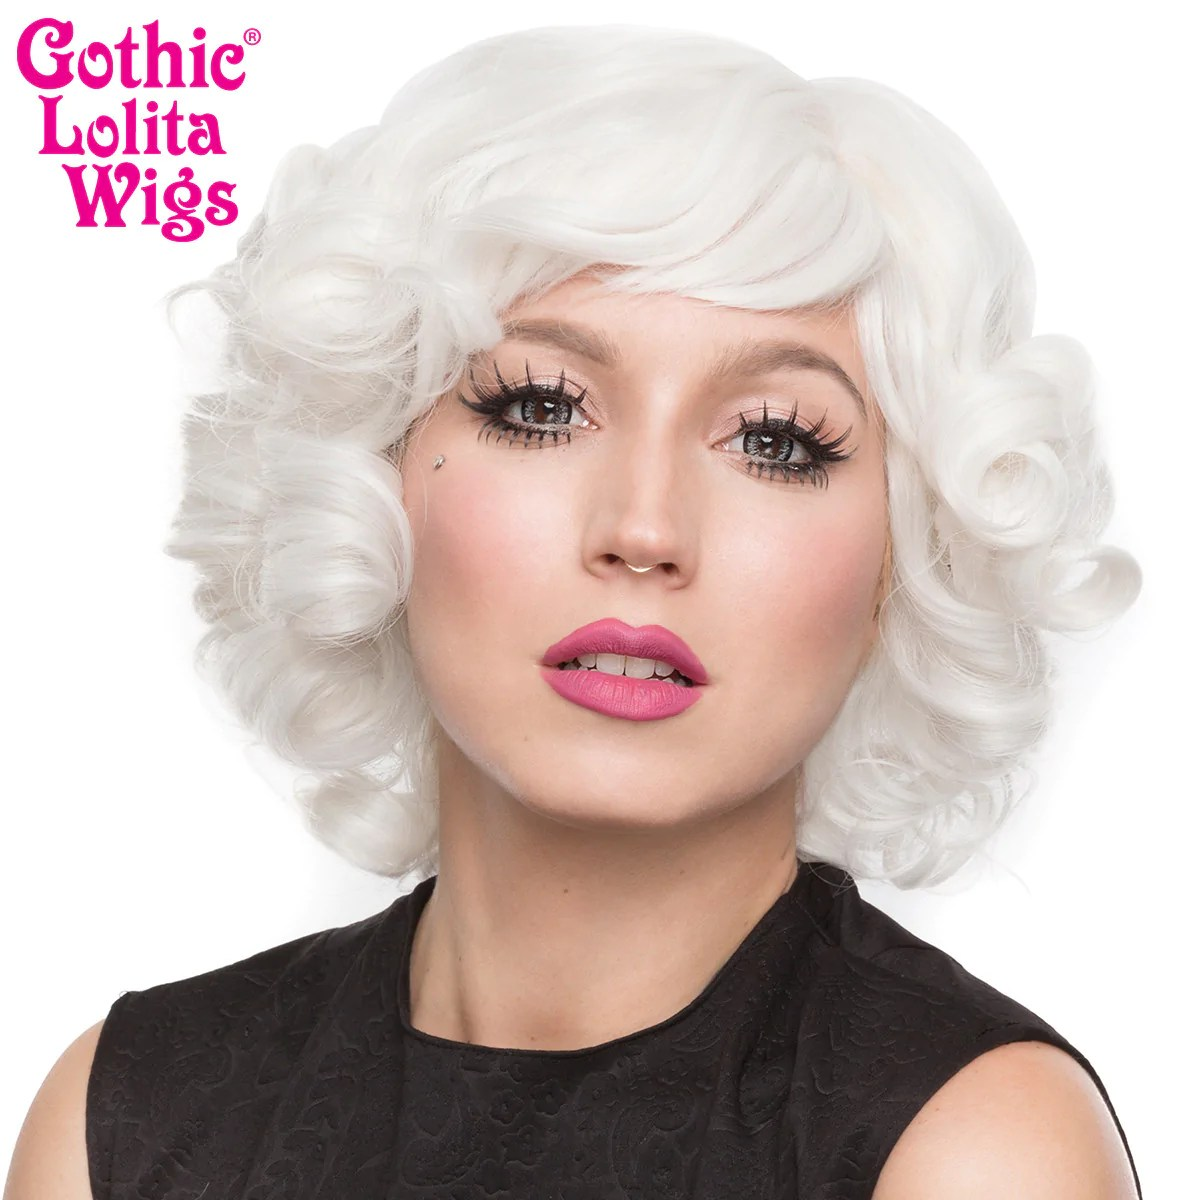 Orange Wig Bob Gothic Lolita Wigs® Curly Bob™ White – Dolluxe®